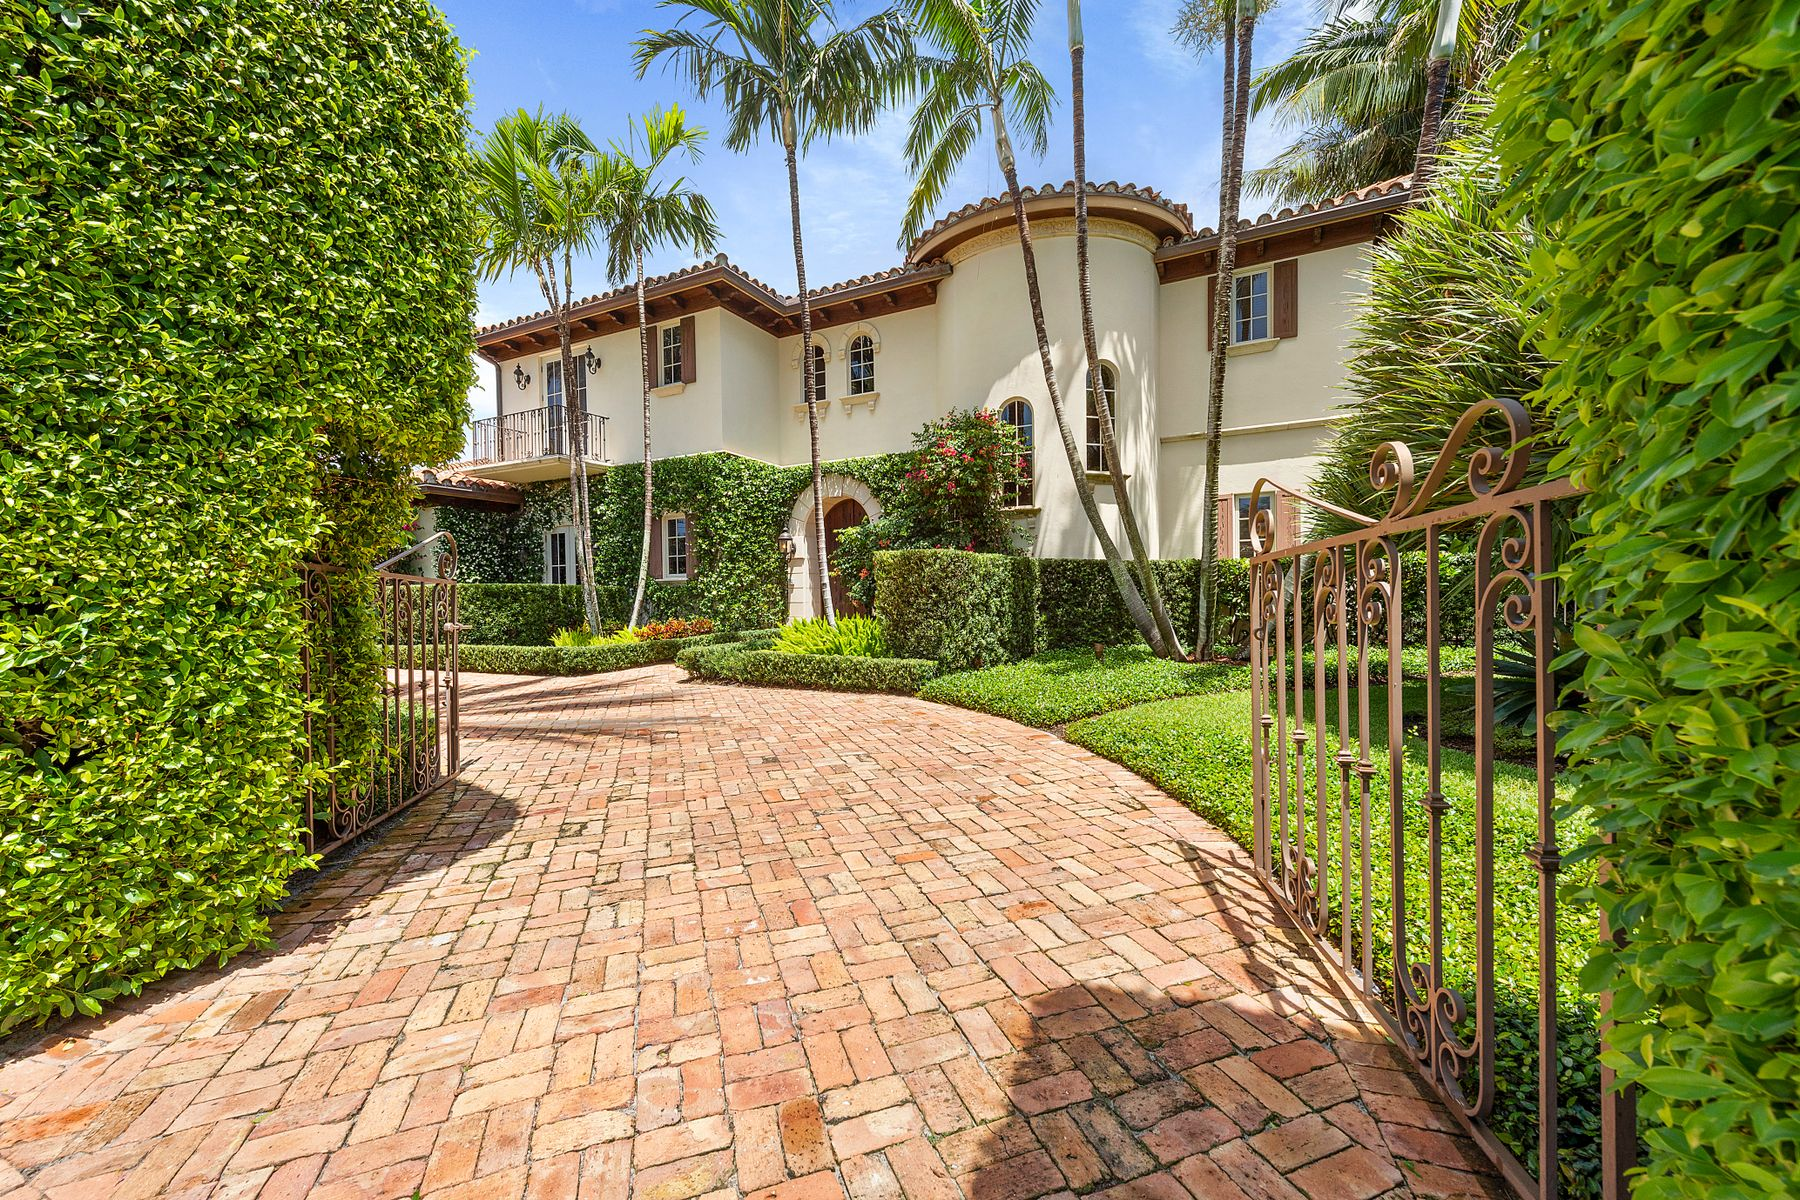 Single Family Homes for Sale at Ocean Block Mediterranean Estate 169 Everglade Ave Palm Beach, Florida 33480 United States